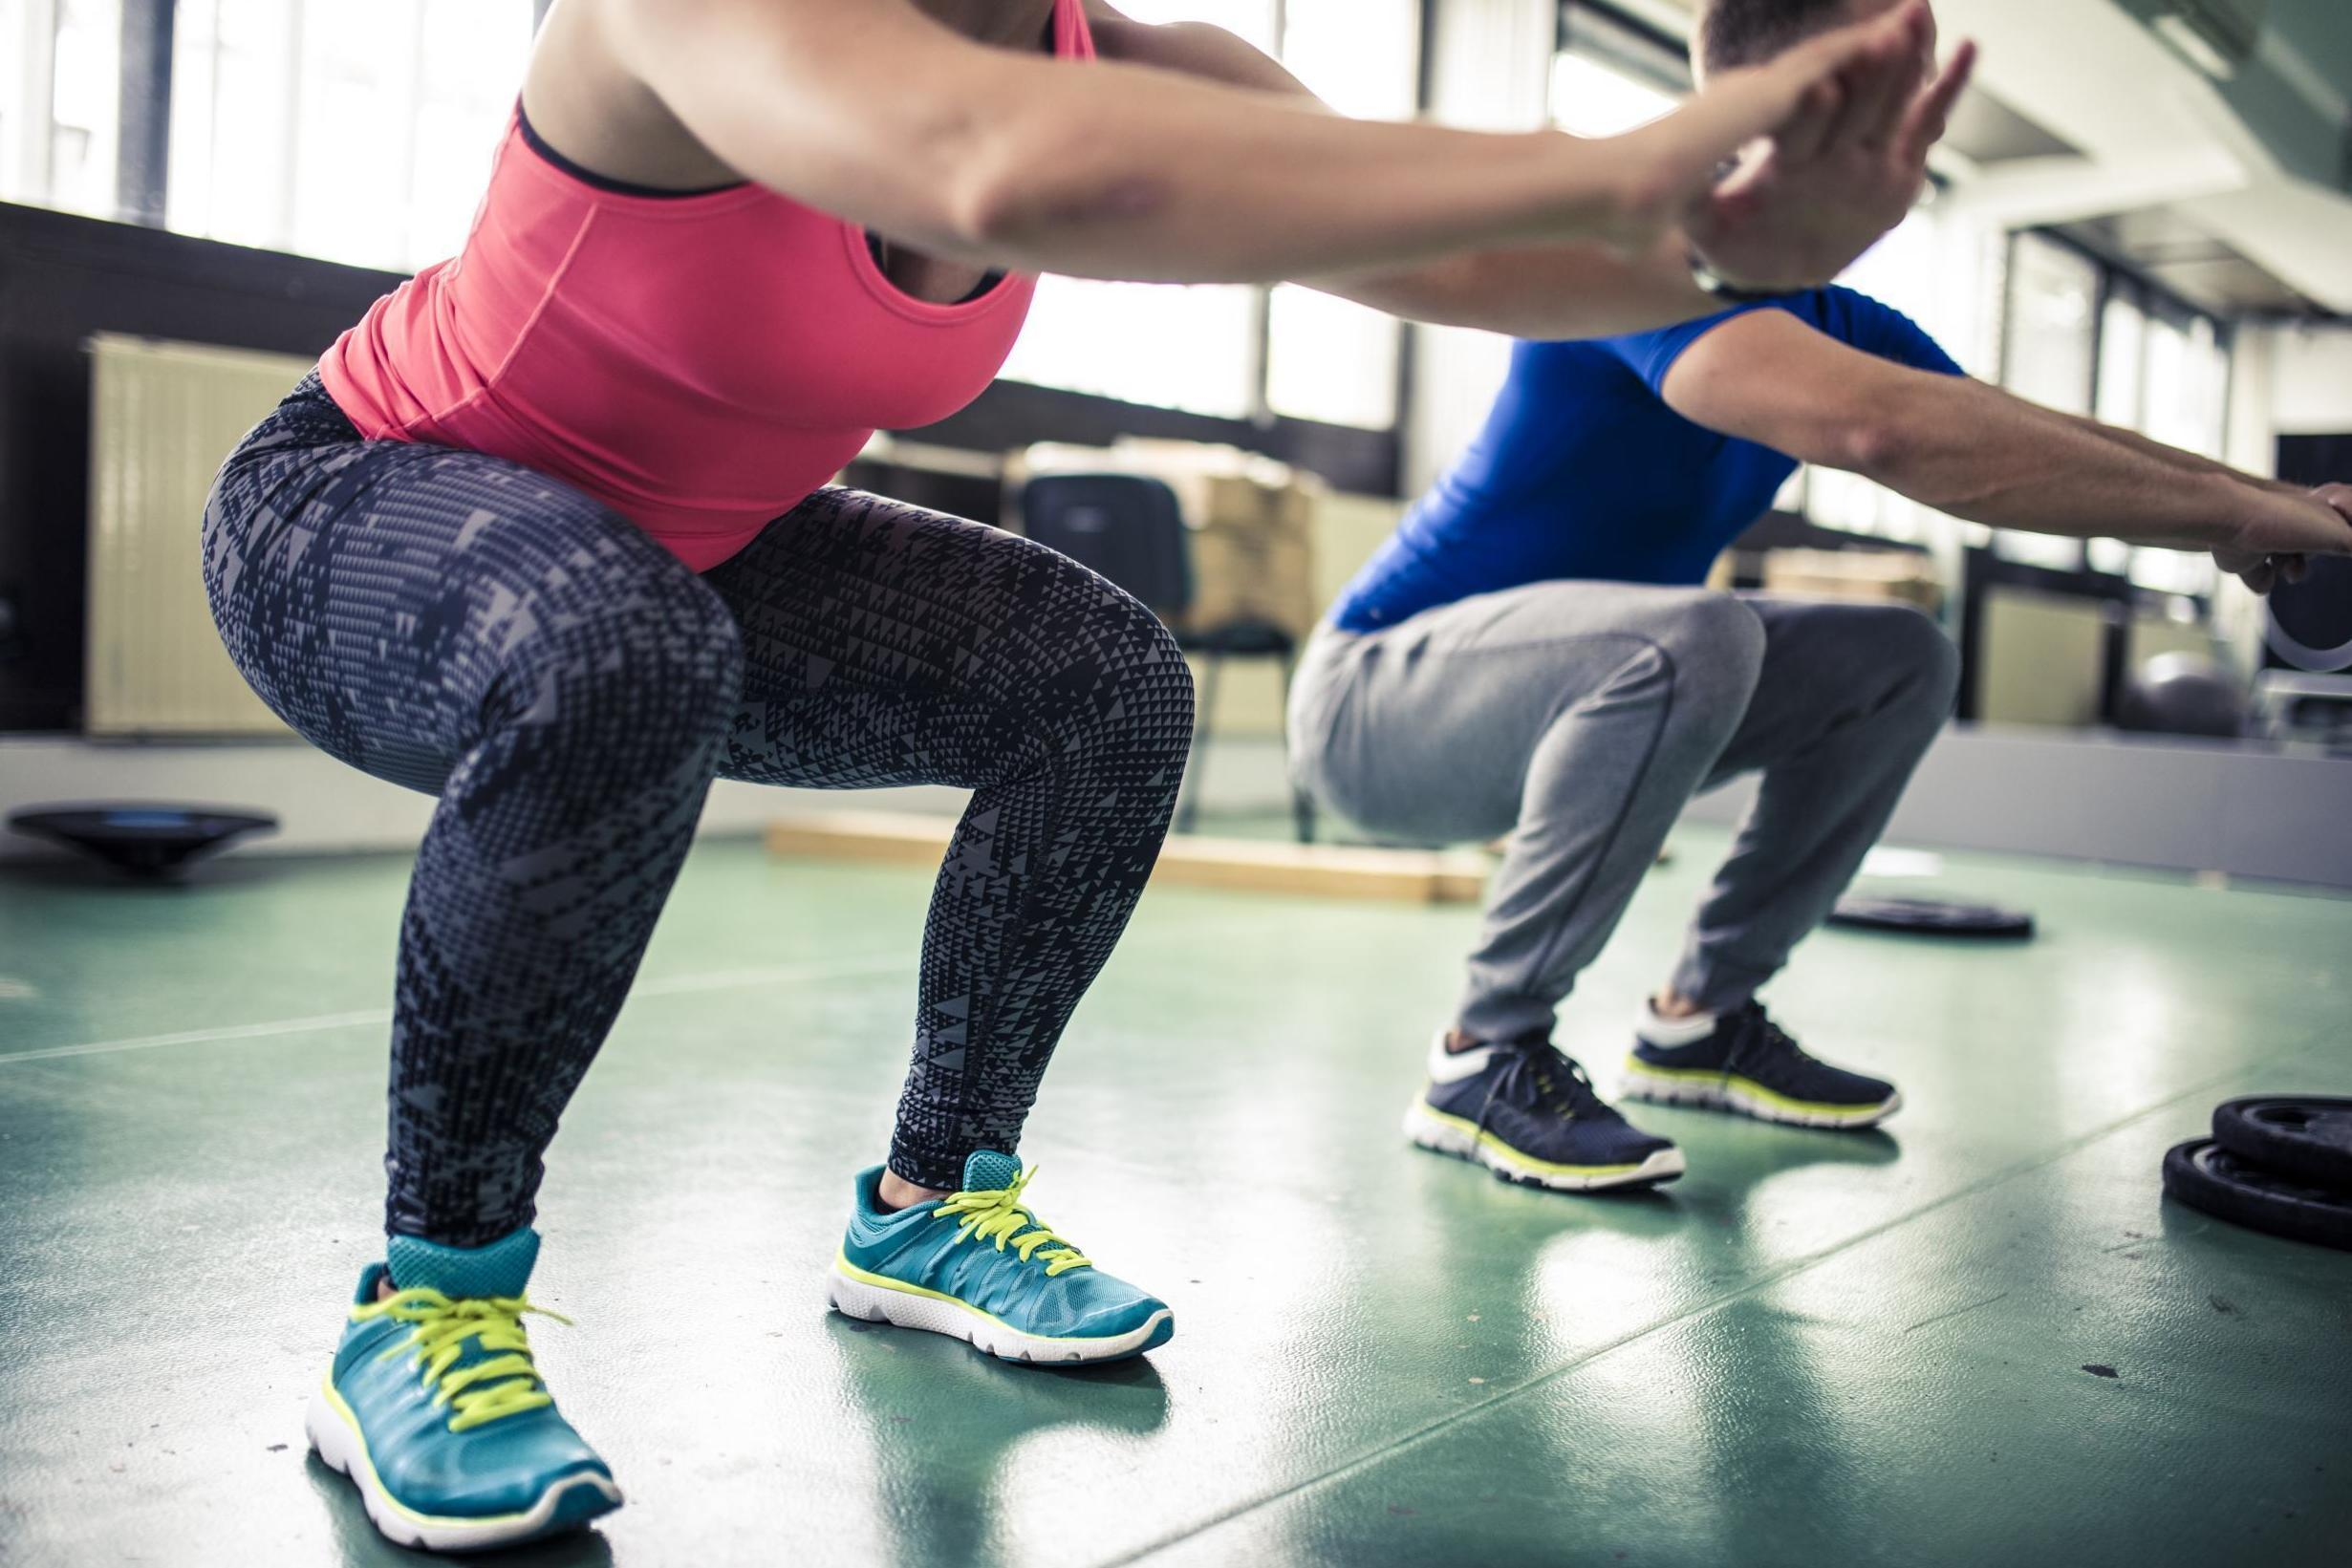 Exercises for boosting your metabolism, according to a personal trainer